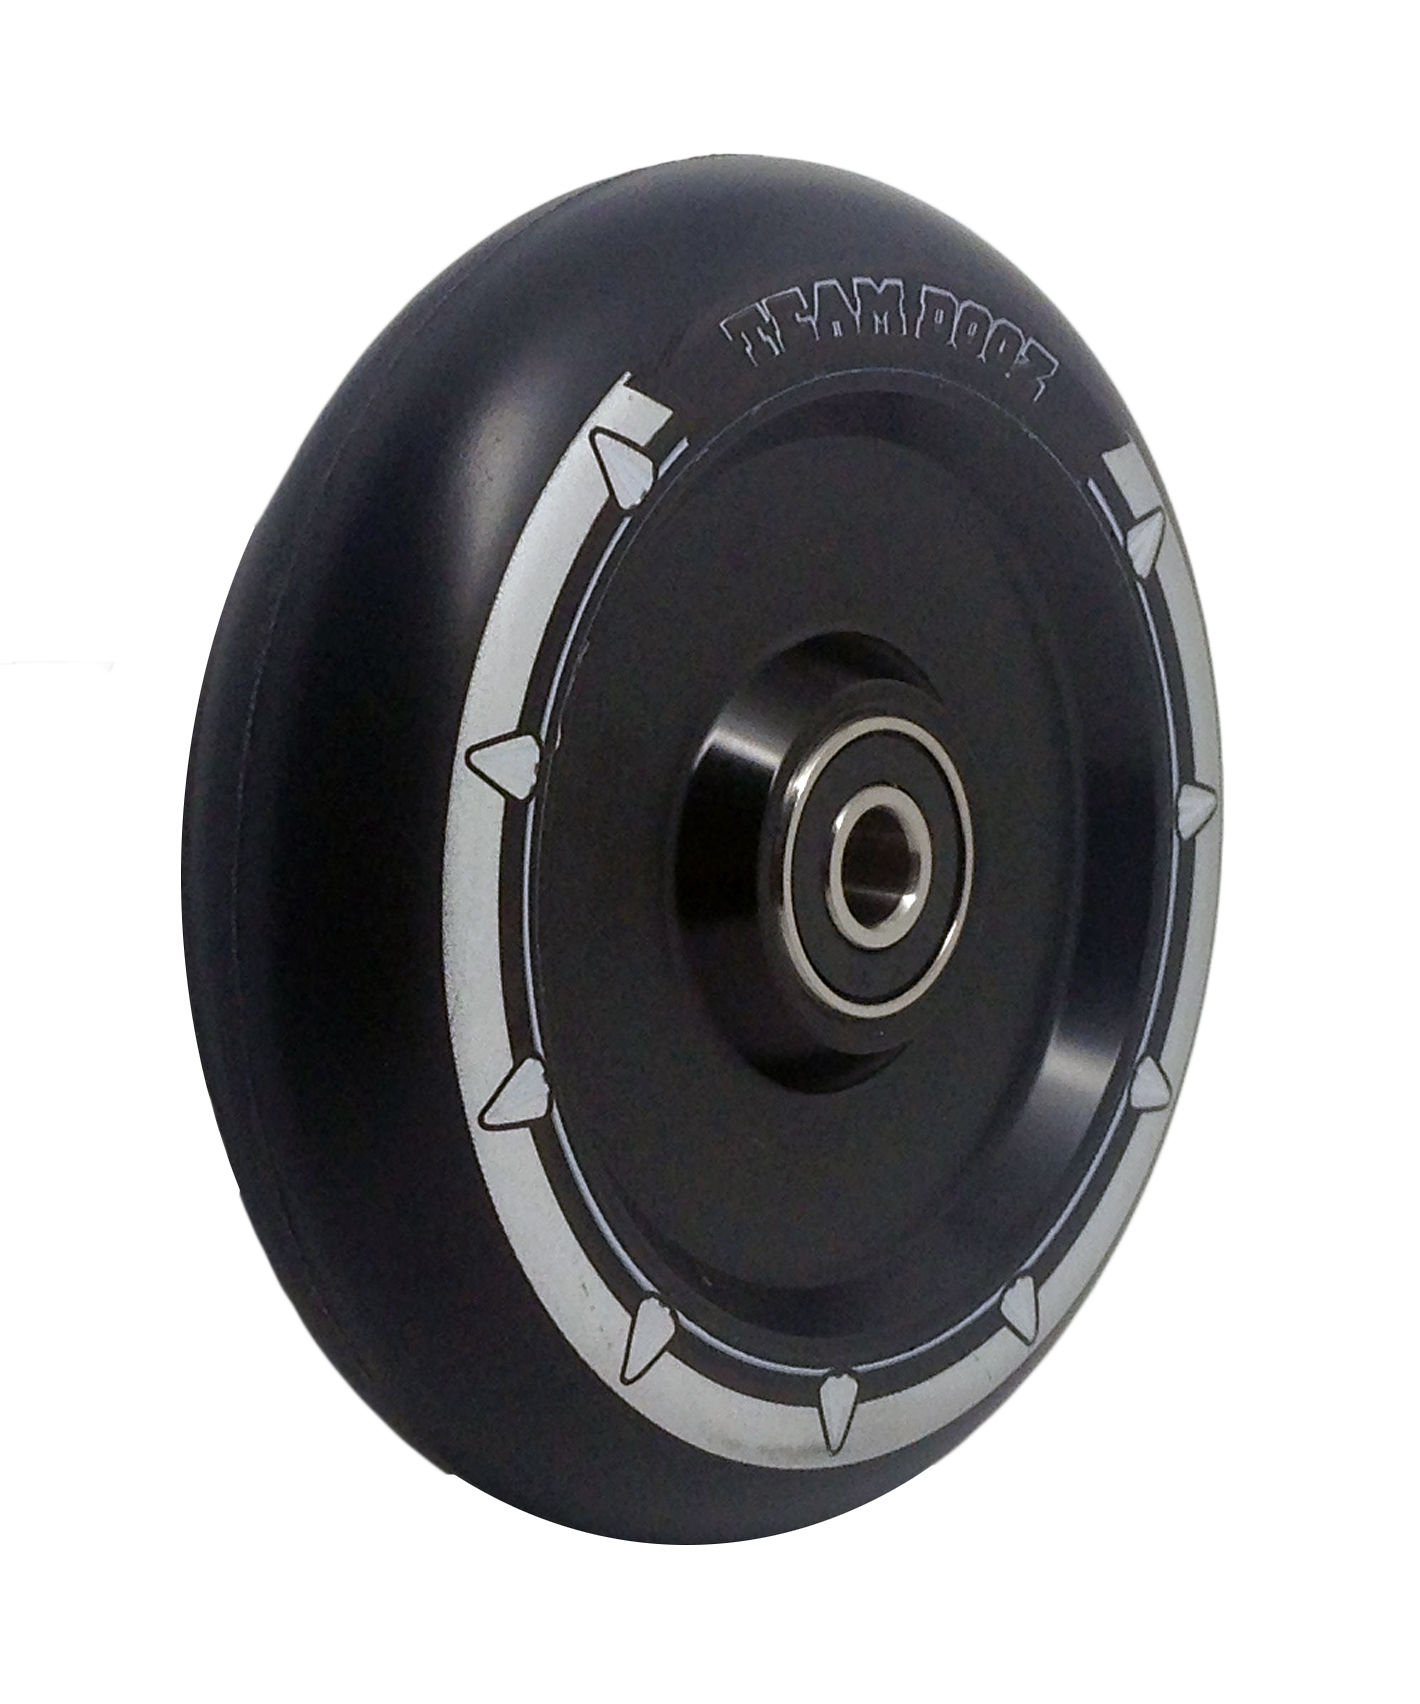 Hollow Core Stunt Scooter Wheel 110mm